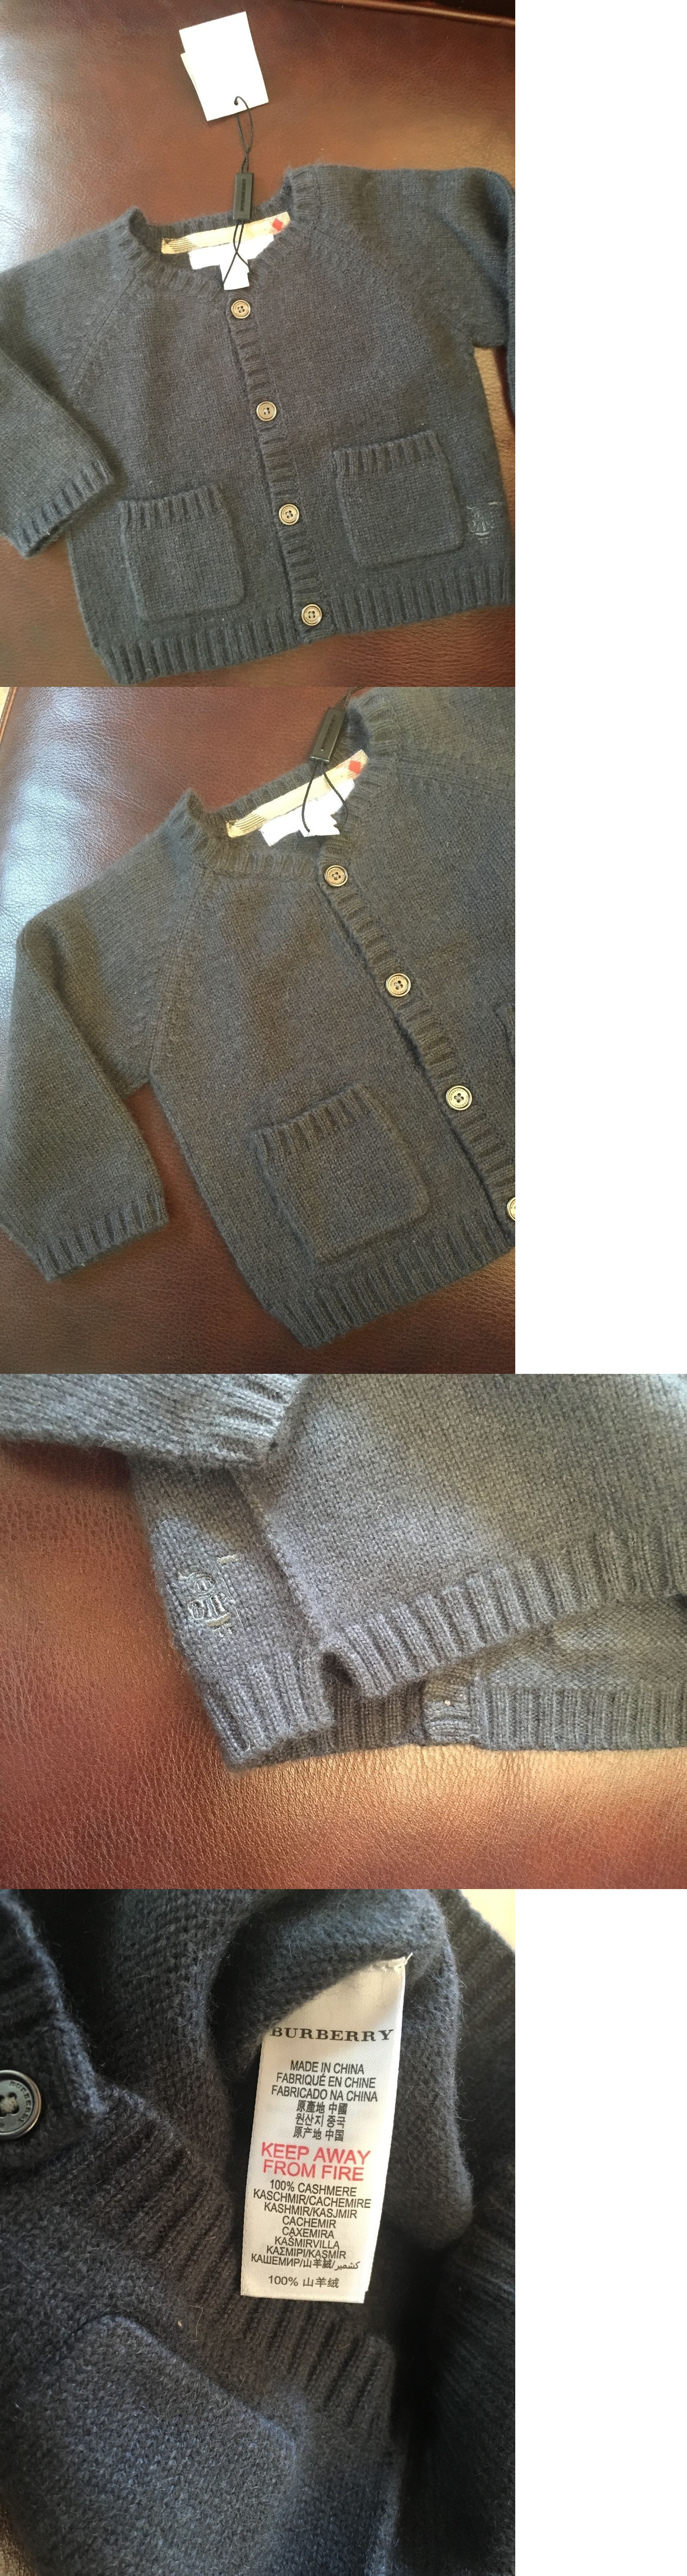 274441fef212 Sweaters 147216  Burberry Baby 100% Cashmere Sweater  Dark Airforce ...